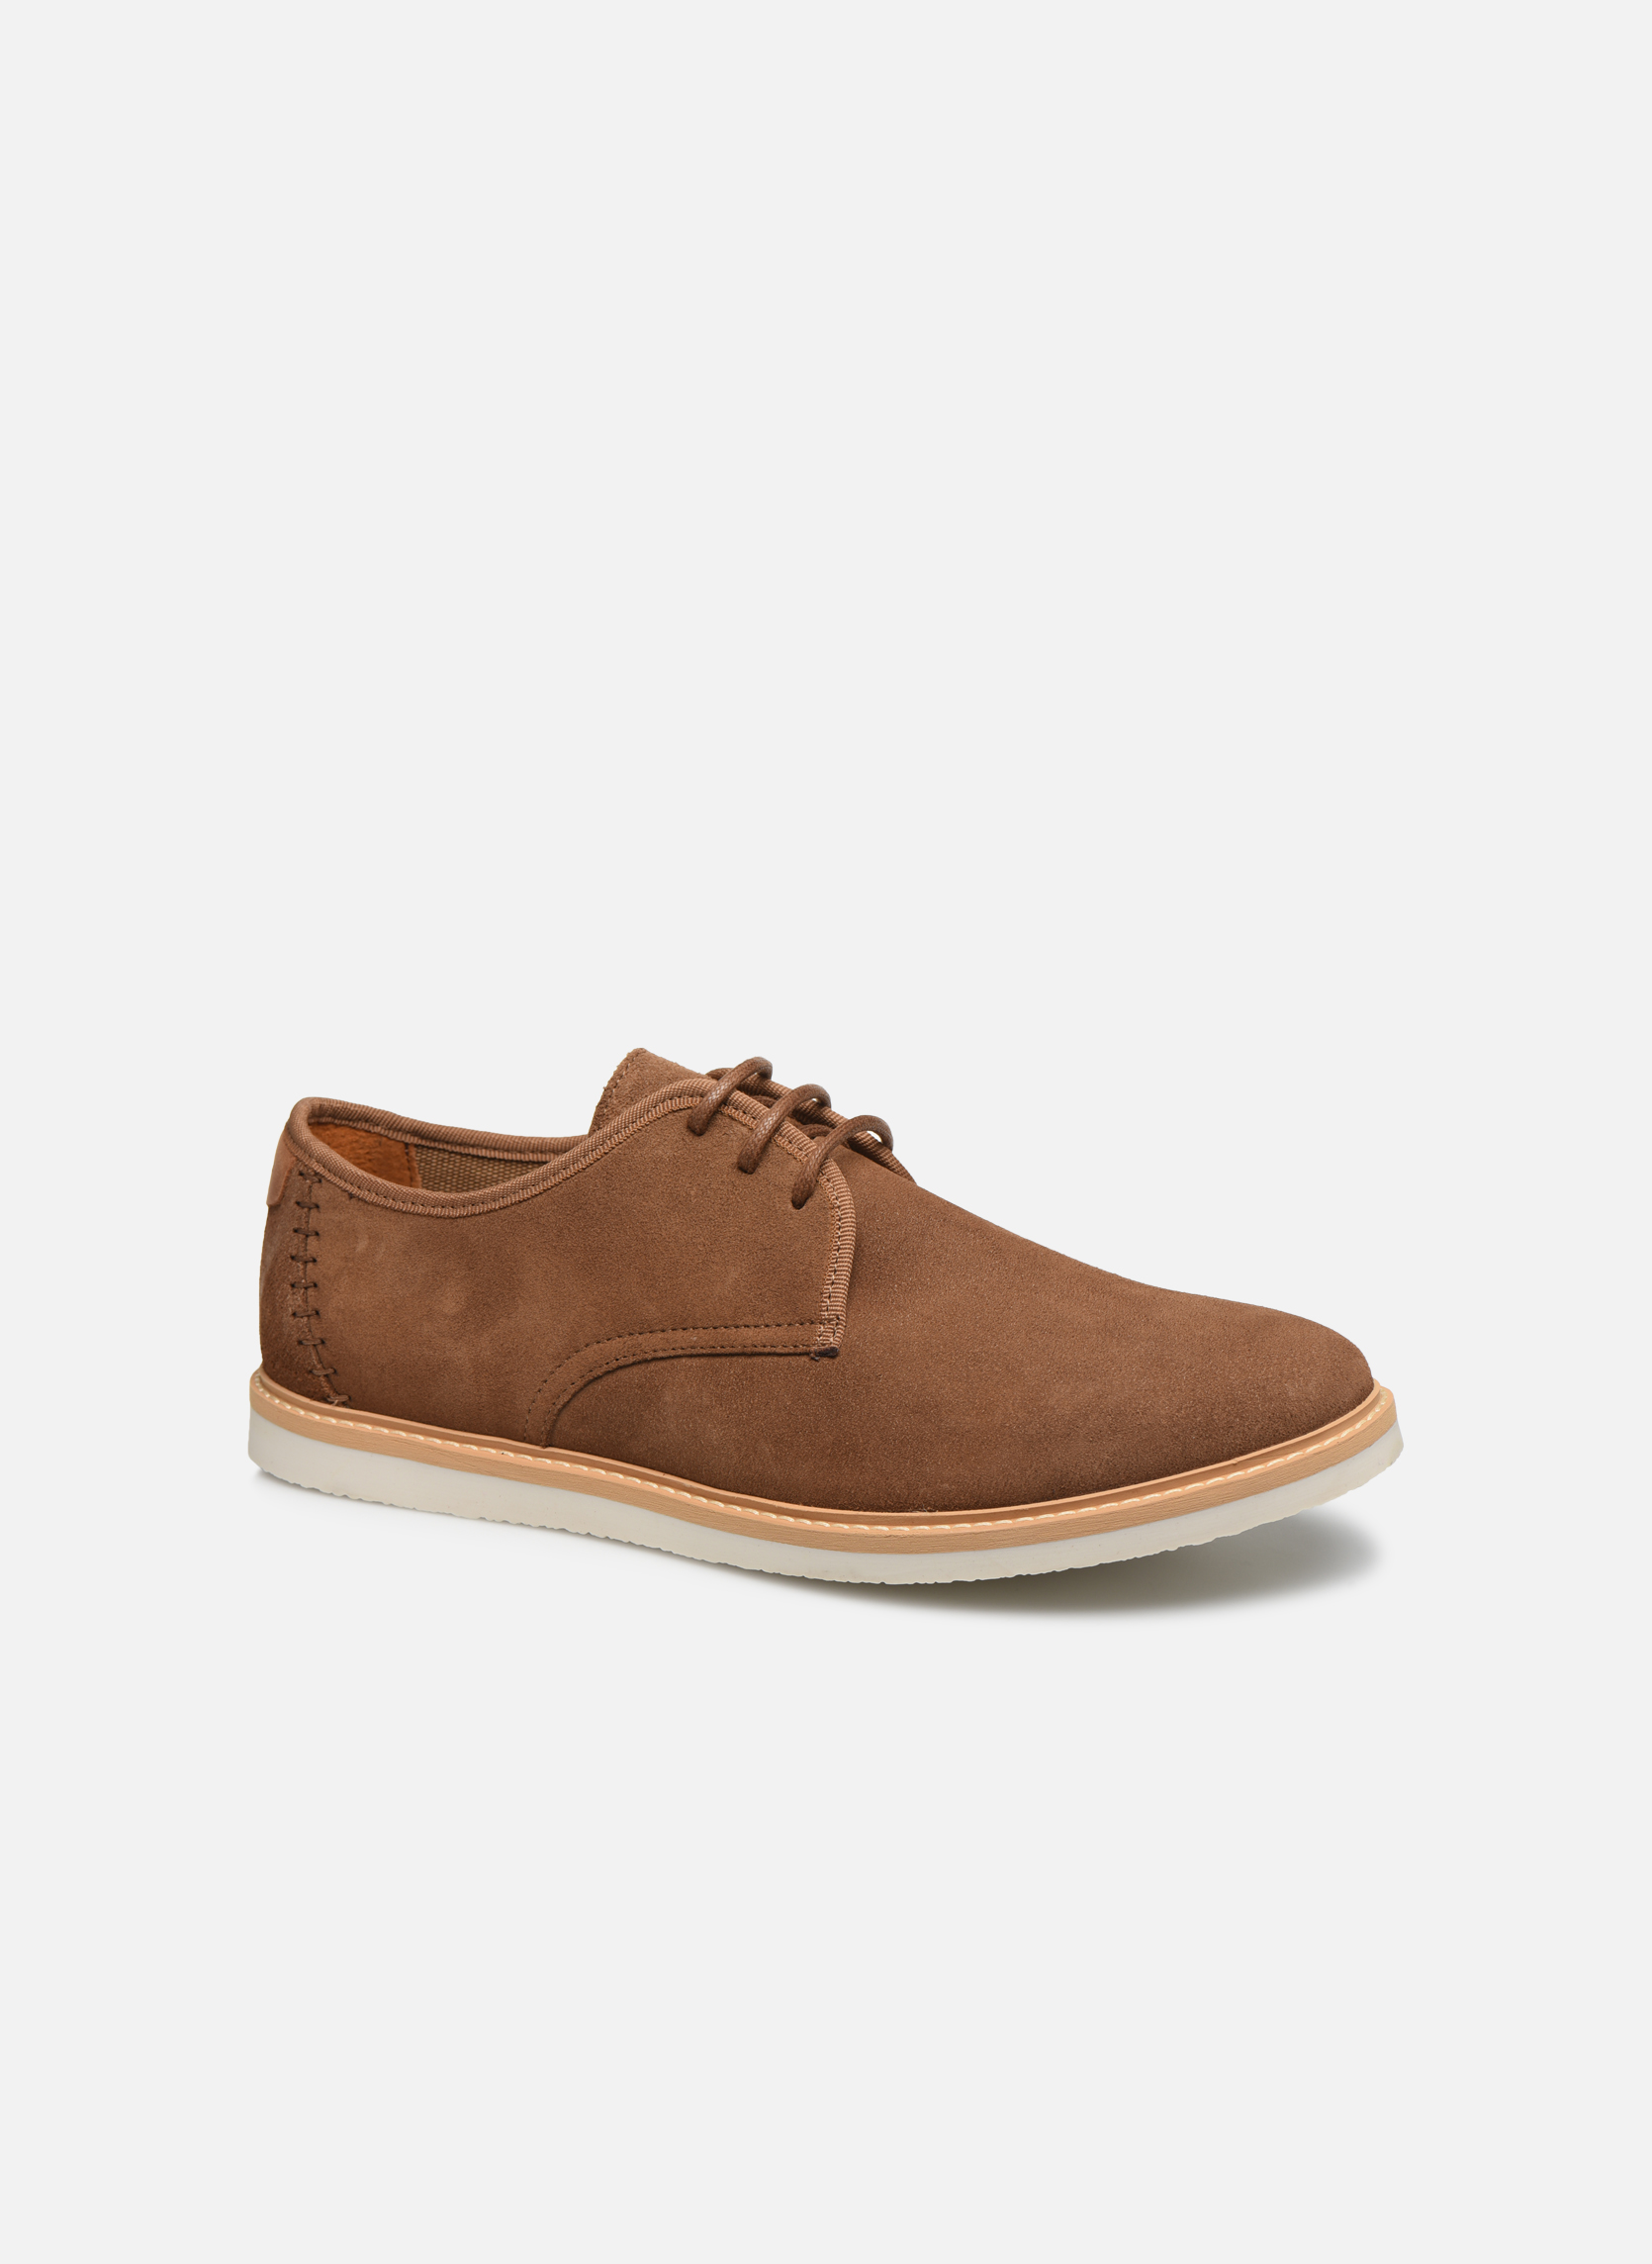 Marques Chaussure homme Schmoove homme Fly Derby Suede Vision